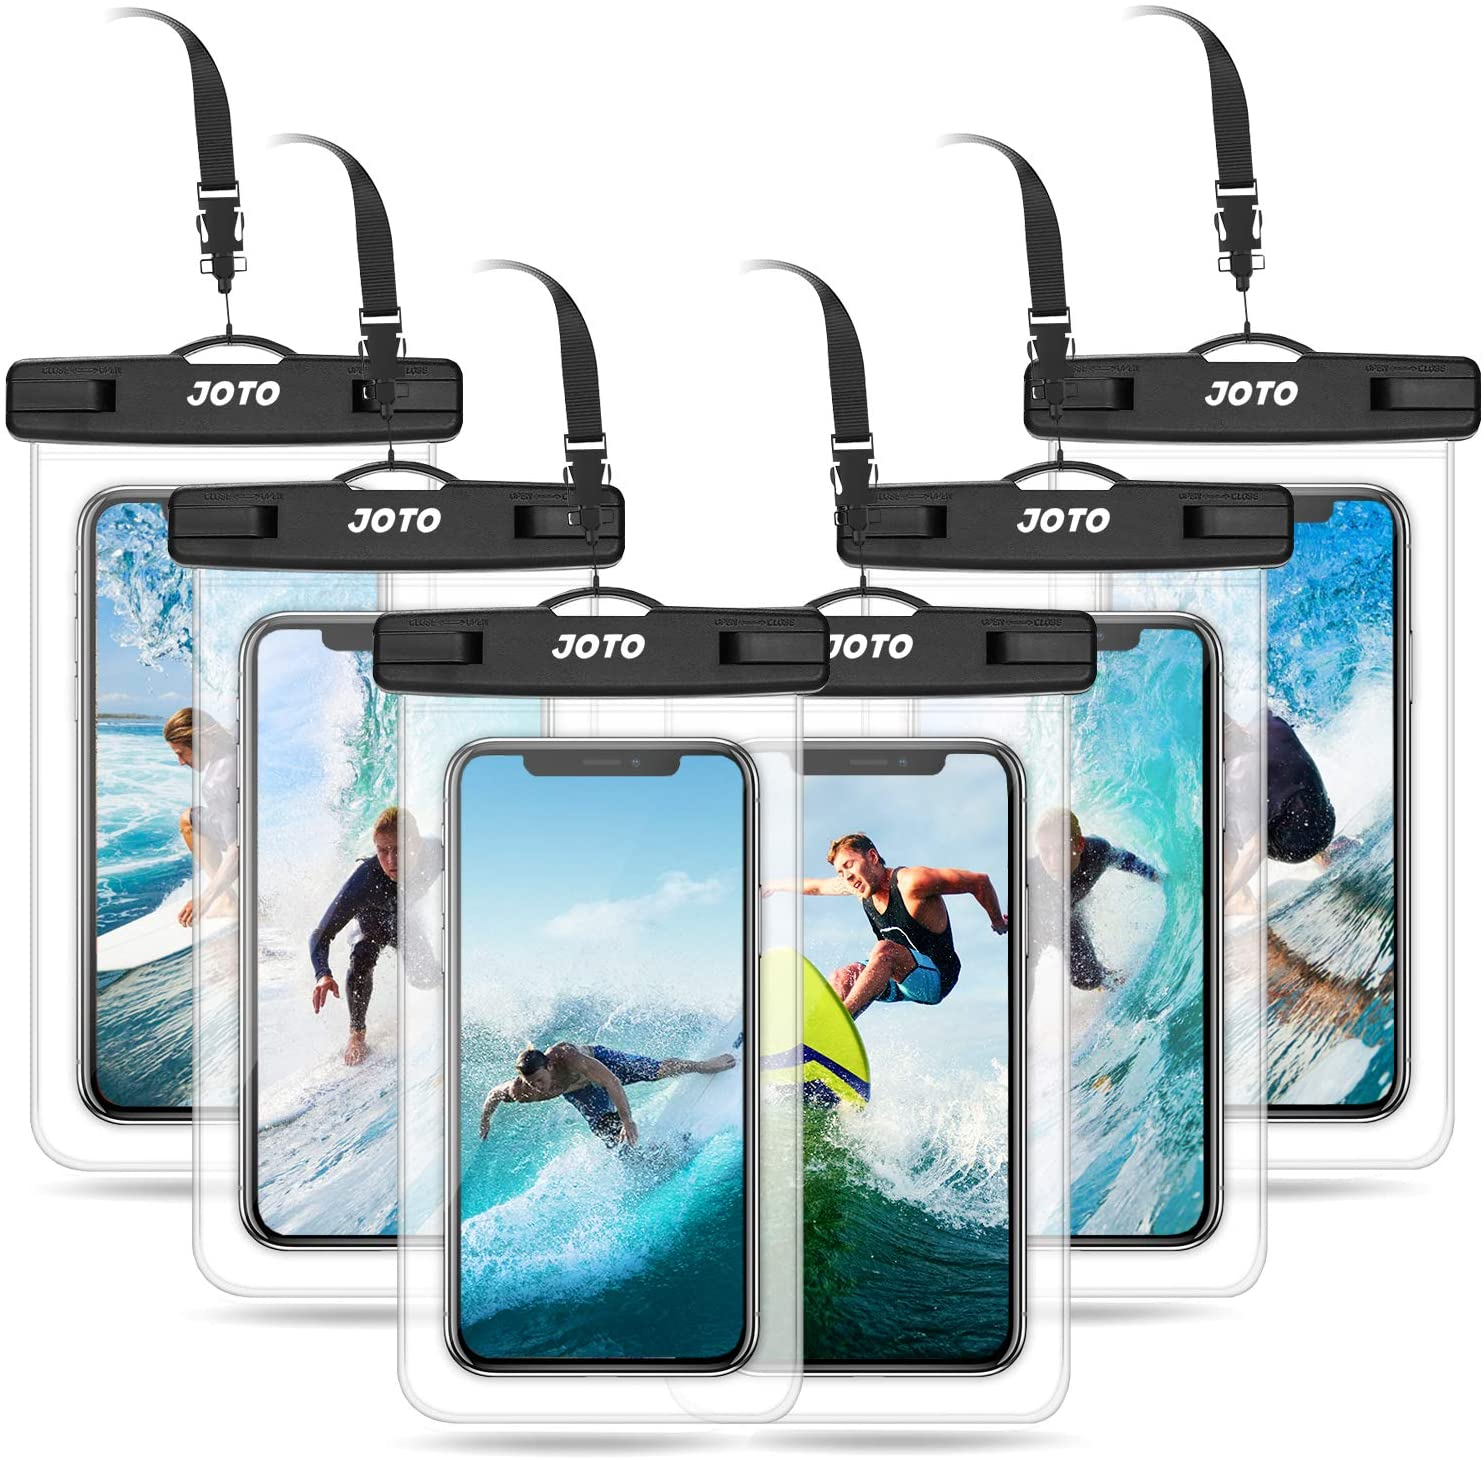 JOTO Universal Waterproof Pouch Cellphone Dry Bag Case for iPhone 13 Pro Max 13 Mini, 12 11 Pro Max Xs Max XR XS X 8 7 6S Plus, Galaxy S10 S9/S9+/S8/S8+/Note10+ 9, Pixel 4 XL up to 7